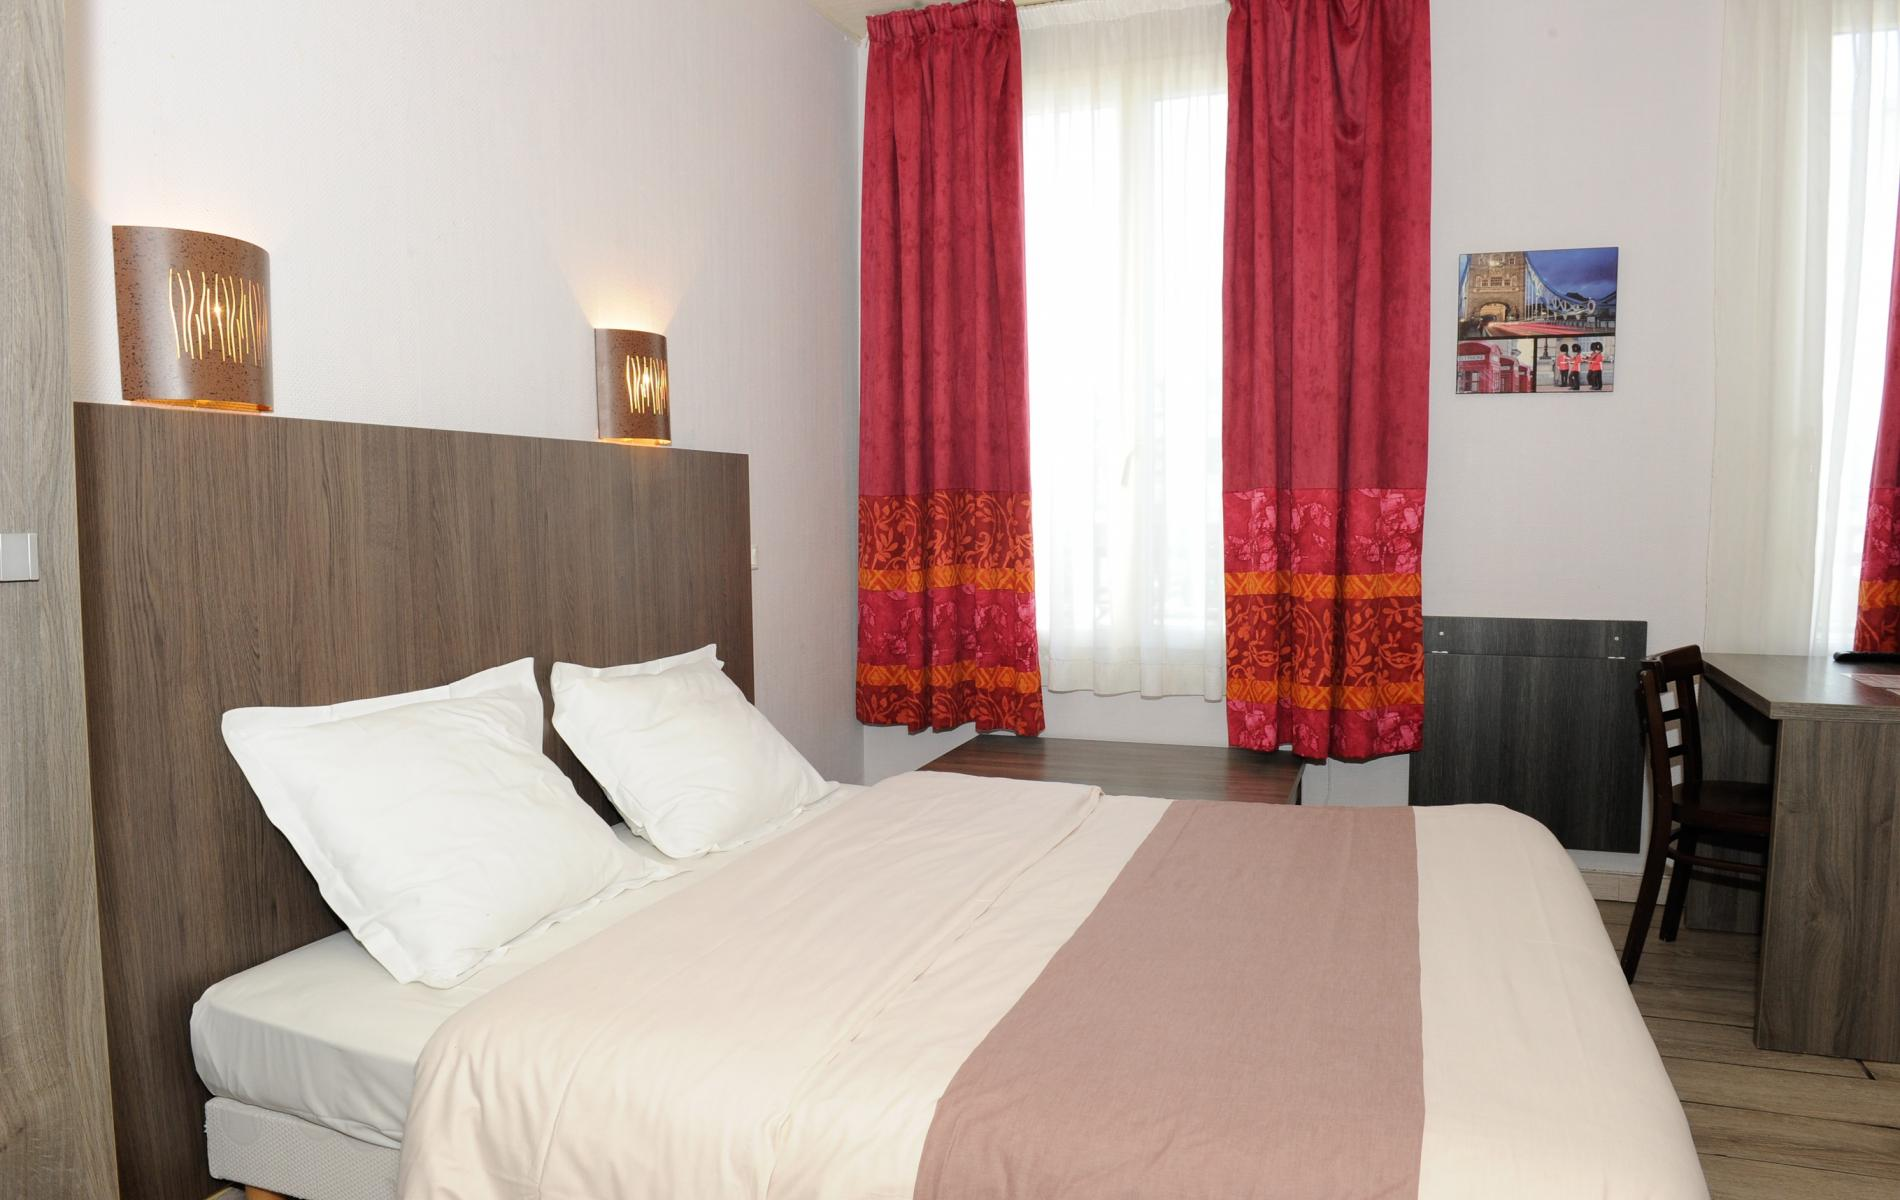 Residence hoteliere 92 for Residence hoteliere